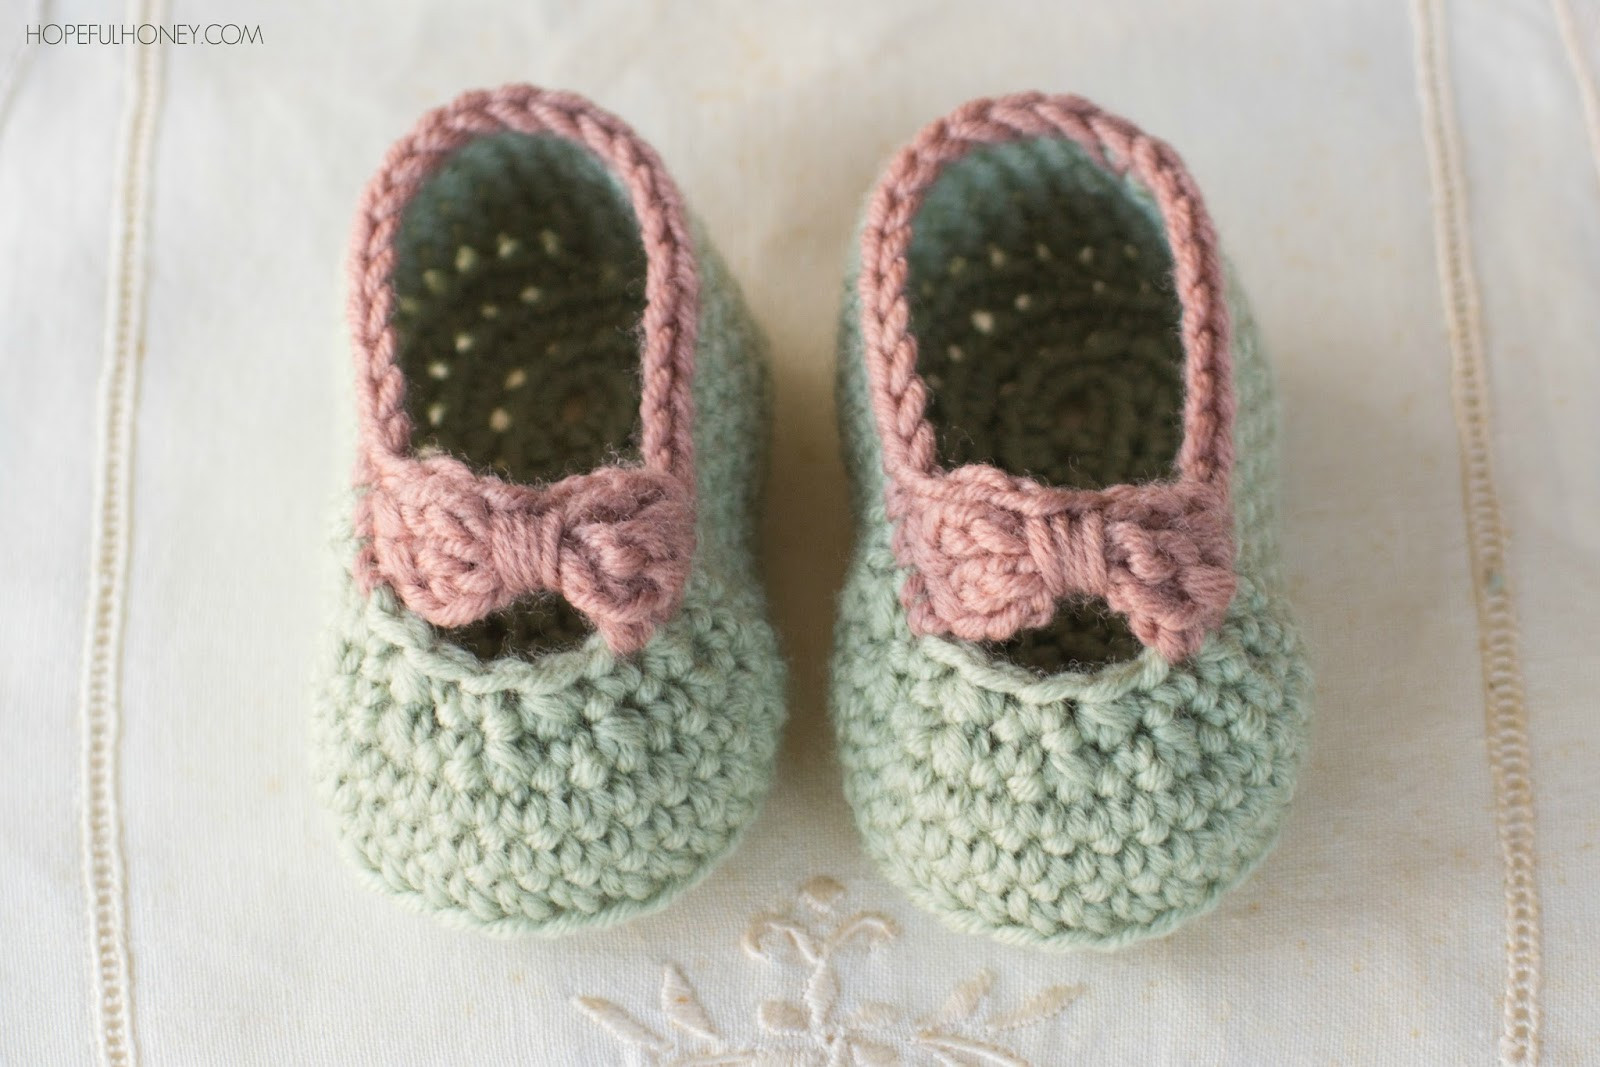 Lovely Crochet Baby Slippers Pattern Free Crochet Newborn Baby Booties Of Incredible 49 Models Crochet Newborn Baby Booties